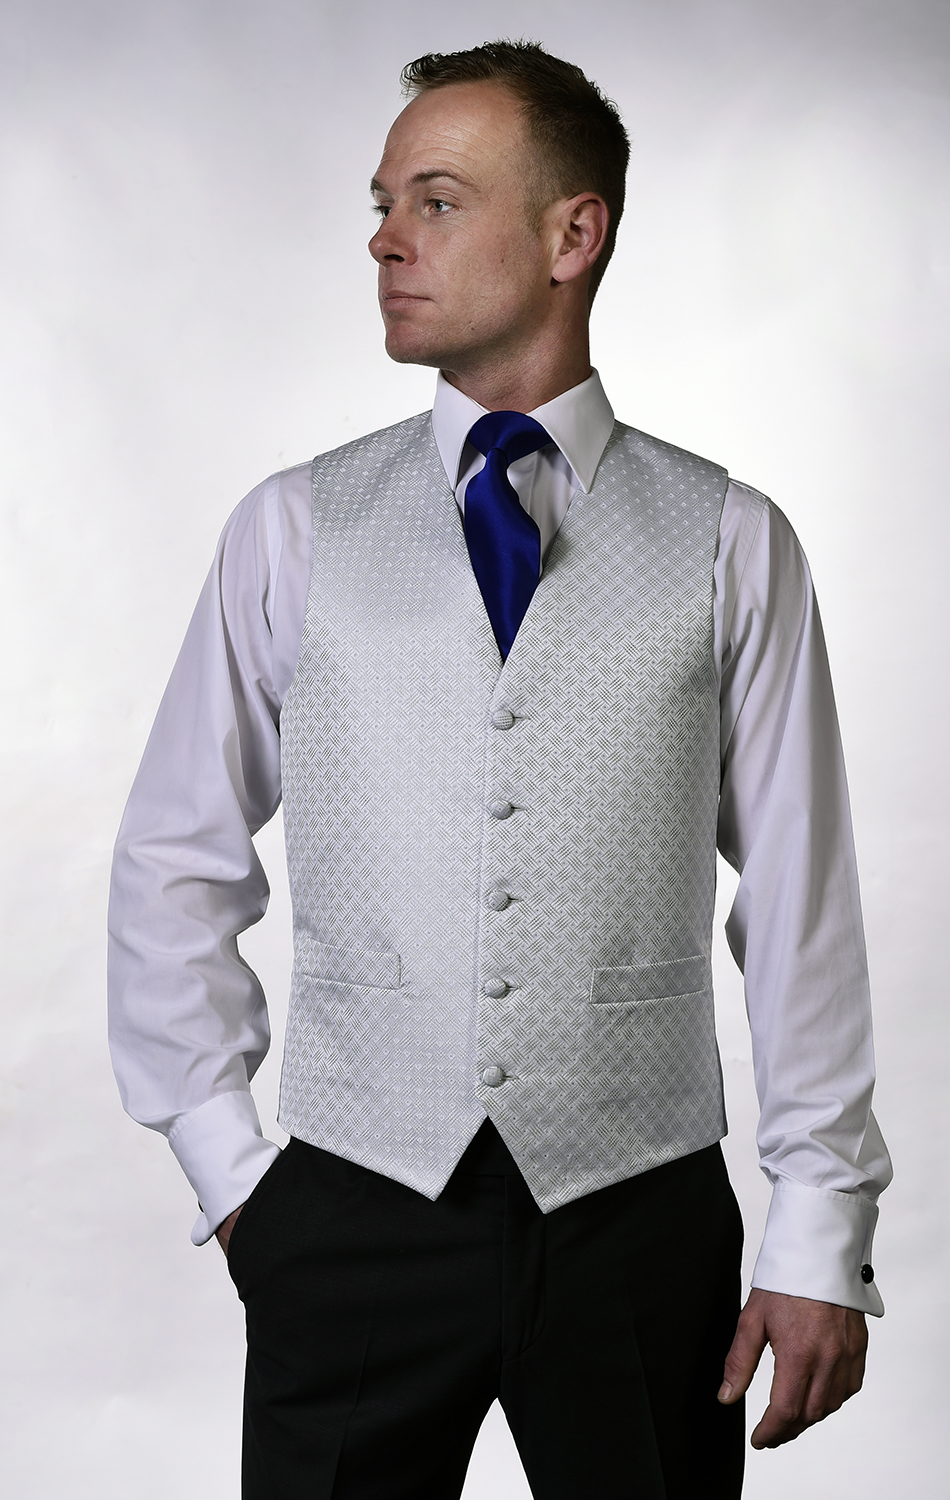 Image of man wearing waistcoat menswear wedding accessories